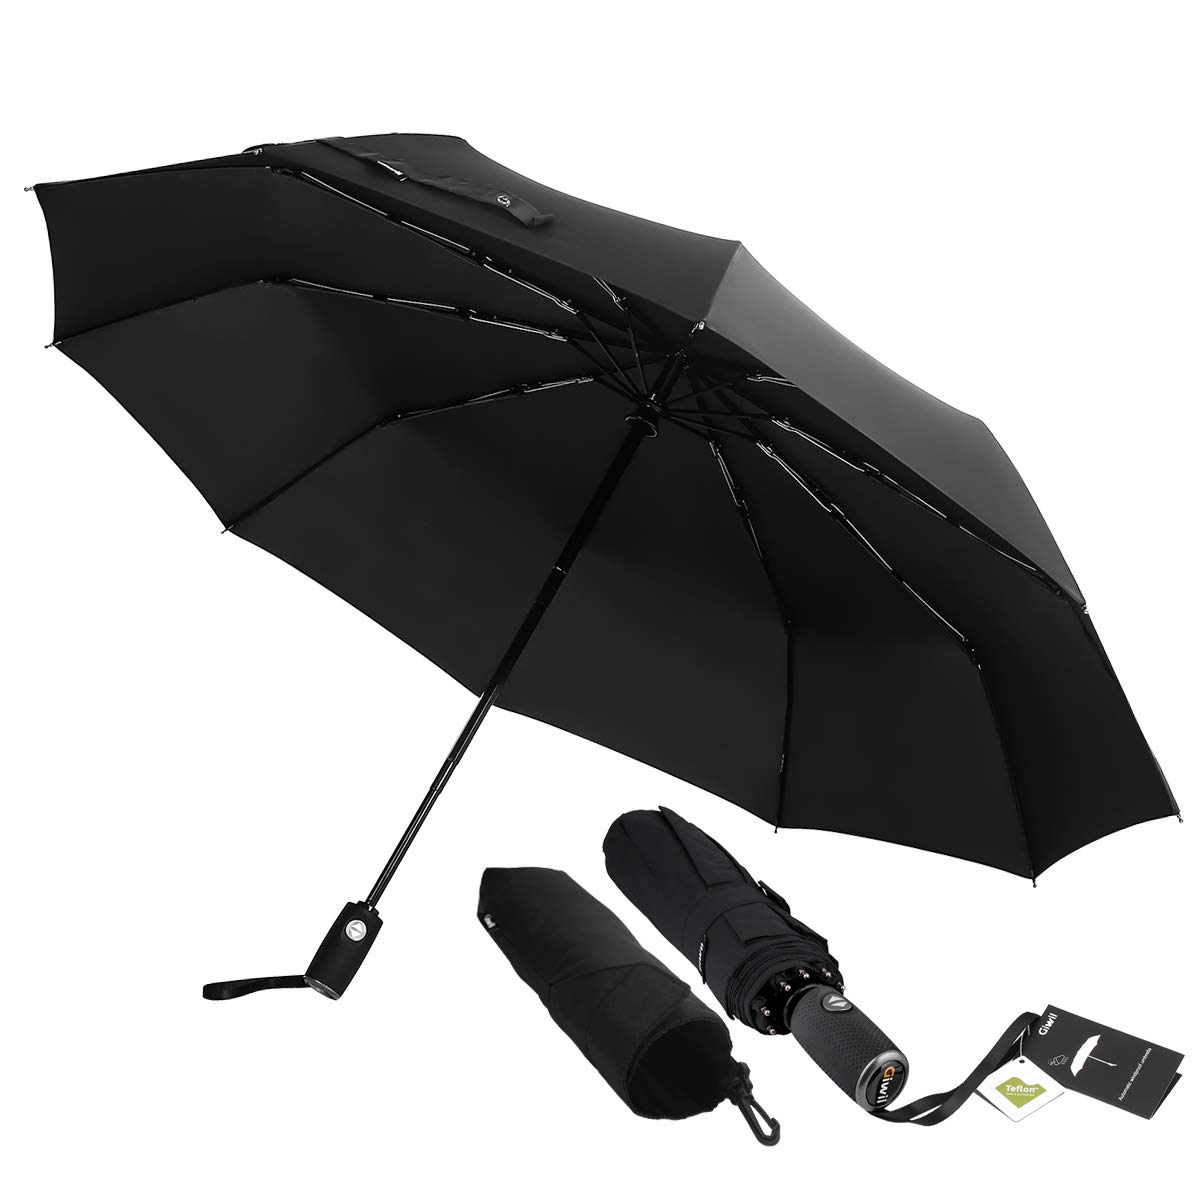 Automatic 10 Ribs Travel Umbrella Windproof - Giwil Folding Umbrella with 210t Fabric Teflon, One Hand Operation, Lightweight and Compact, Fast Drying, for Men, 42inch 16.6OZ Black LTD 600040